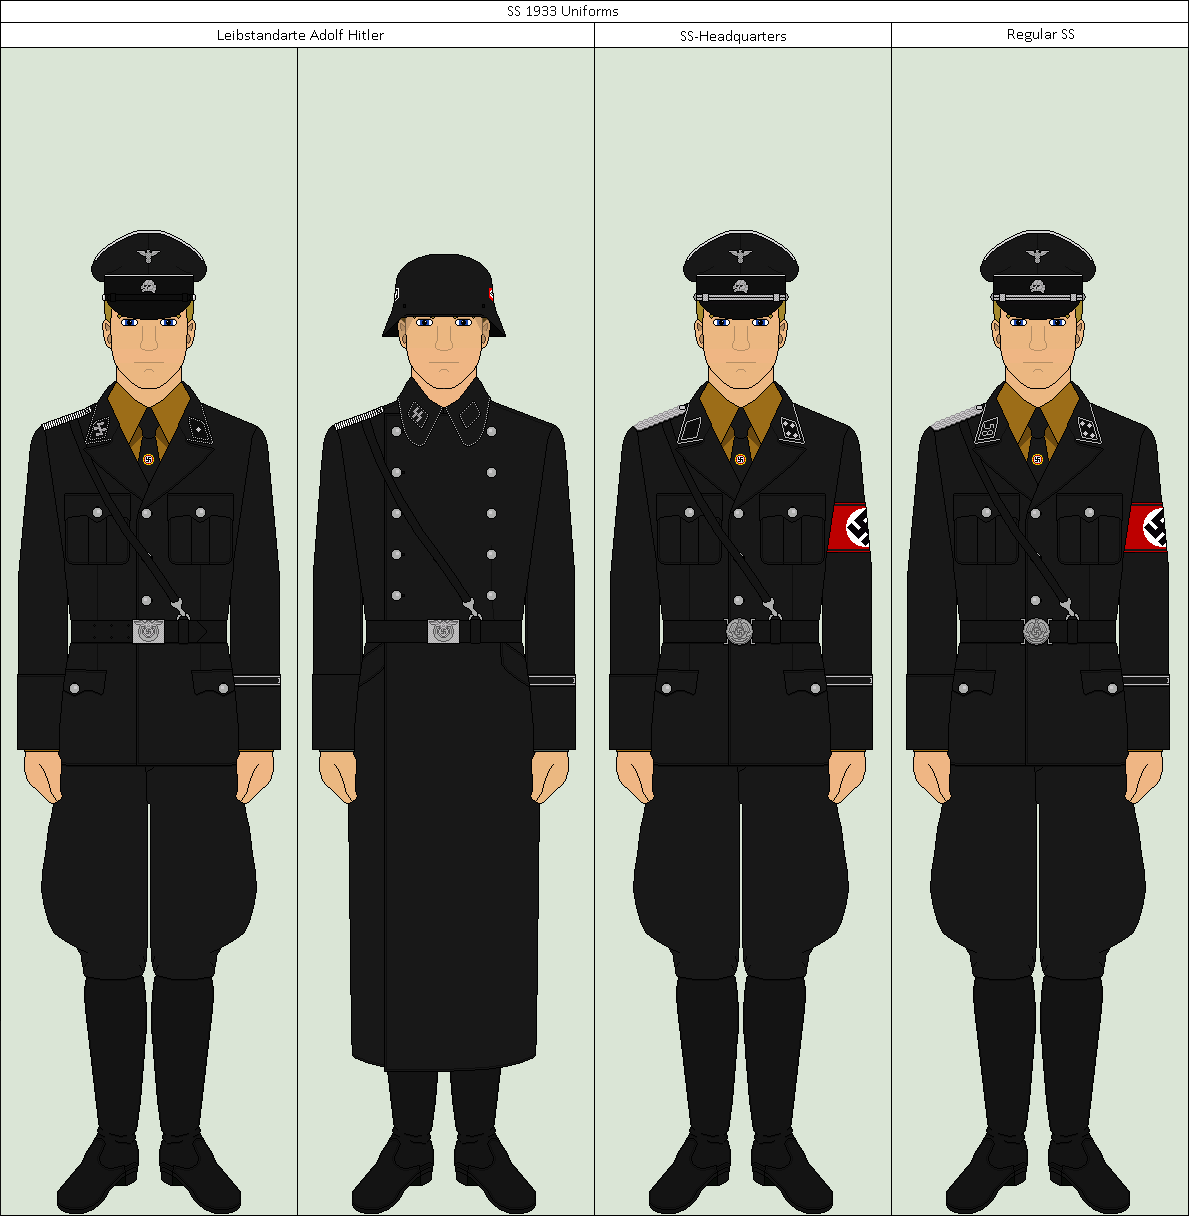 1933 SS Uniforms by Major-Vianna on DeviantArt